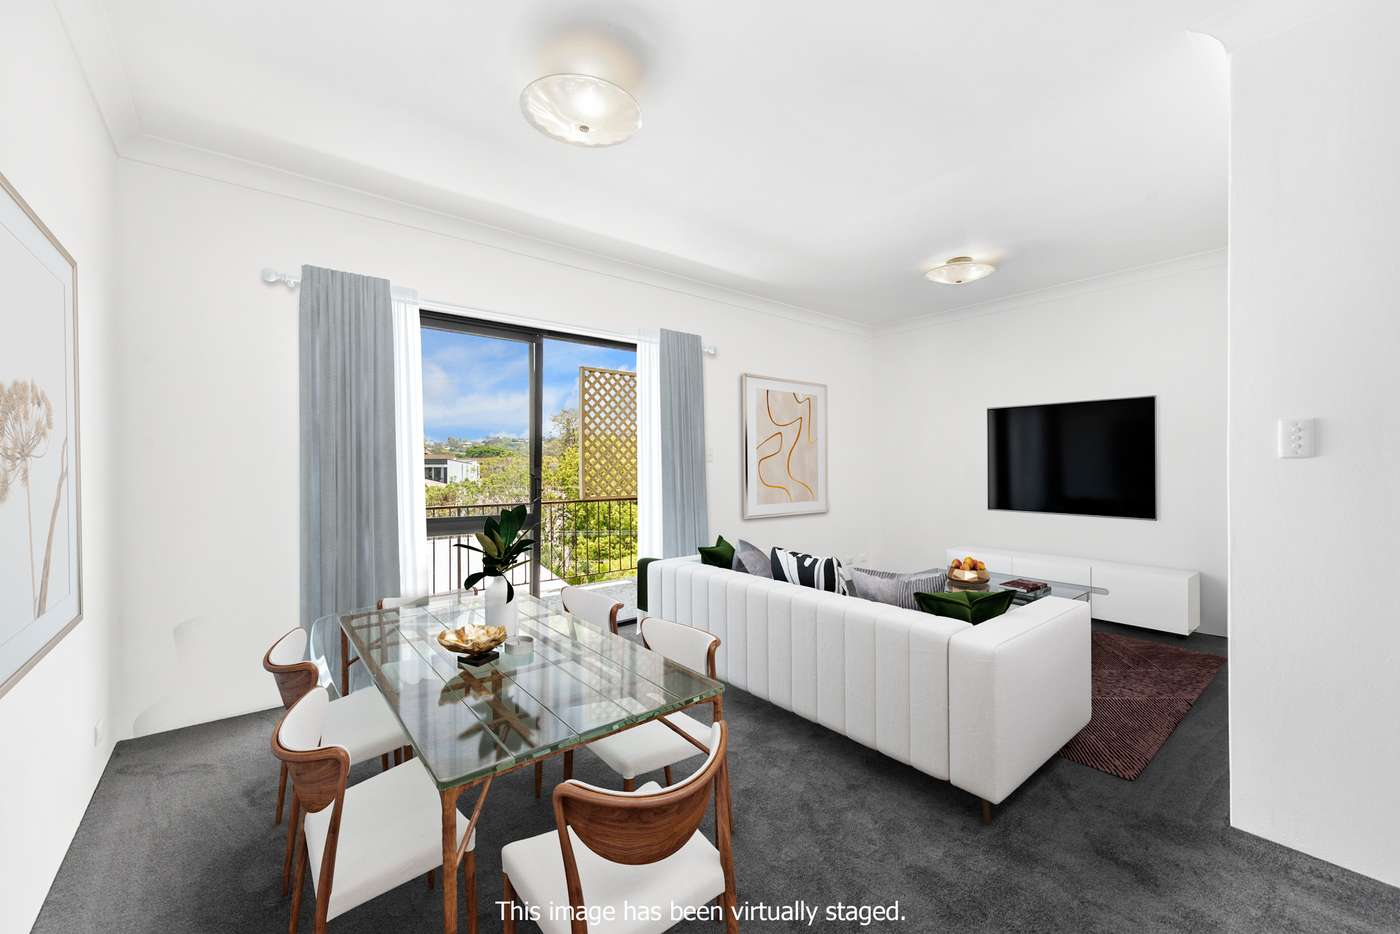 Main view of Homely apartment listing, 5/36 Terrace Street, Newmarket QLD 4051